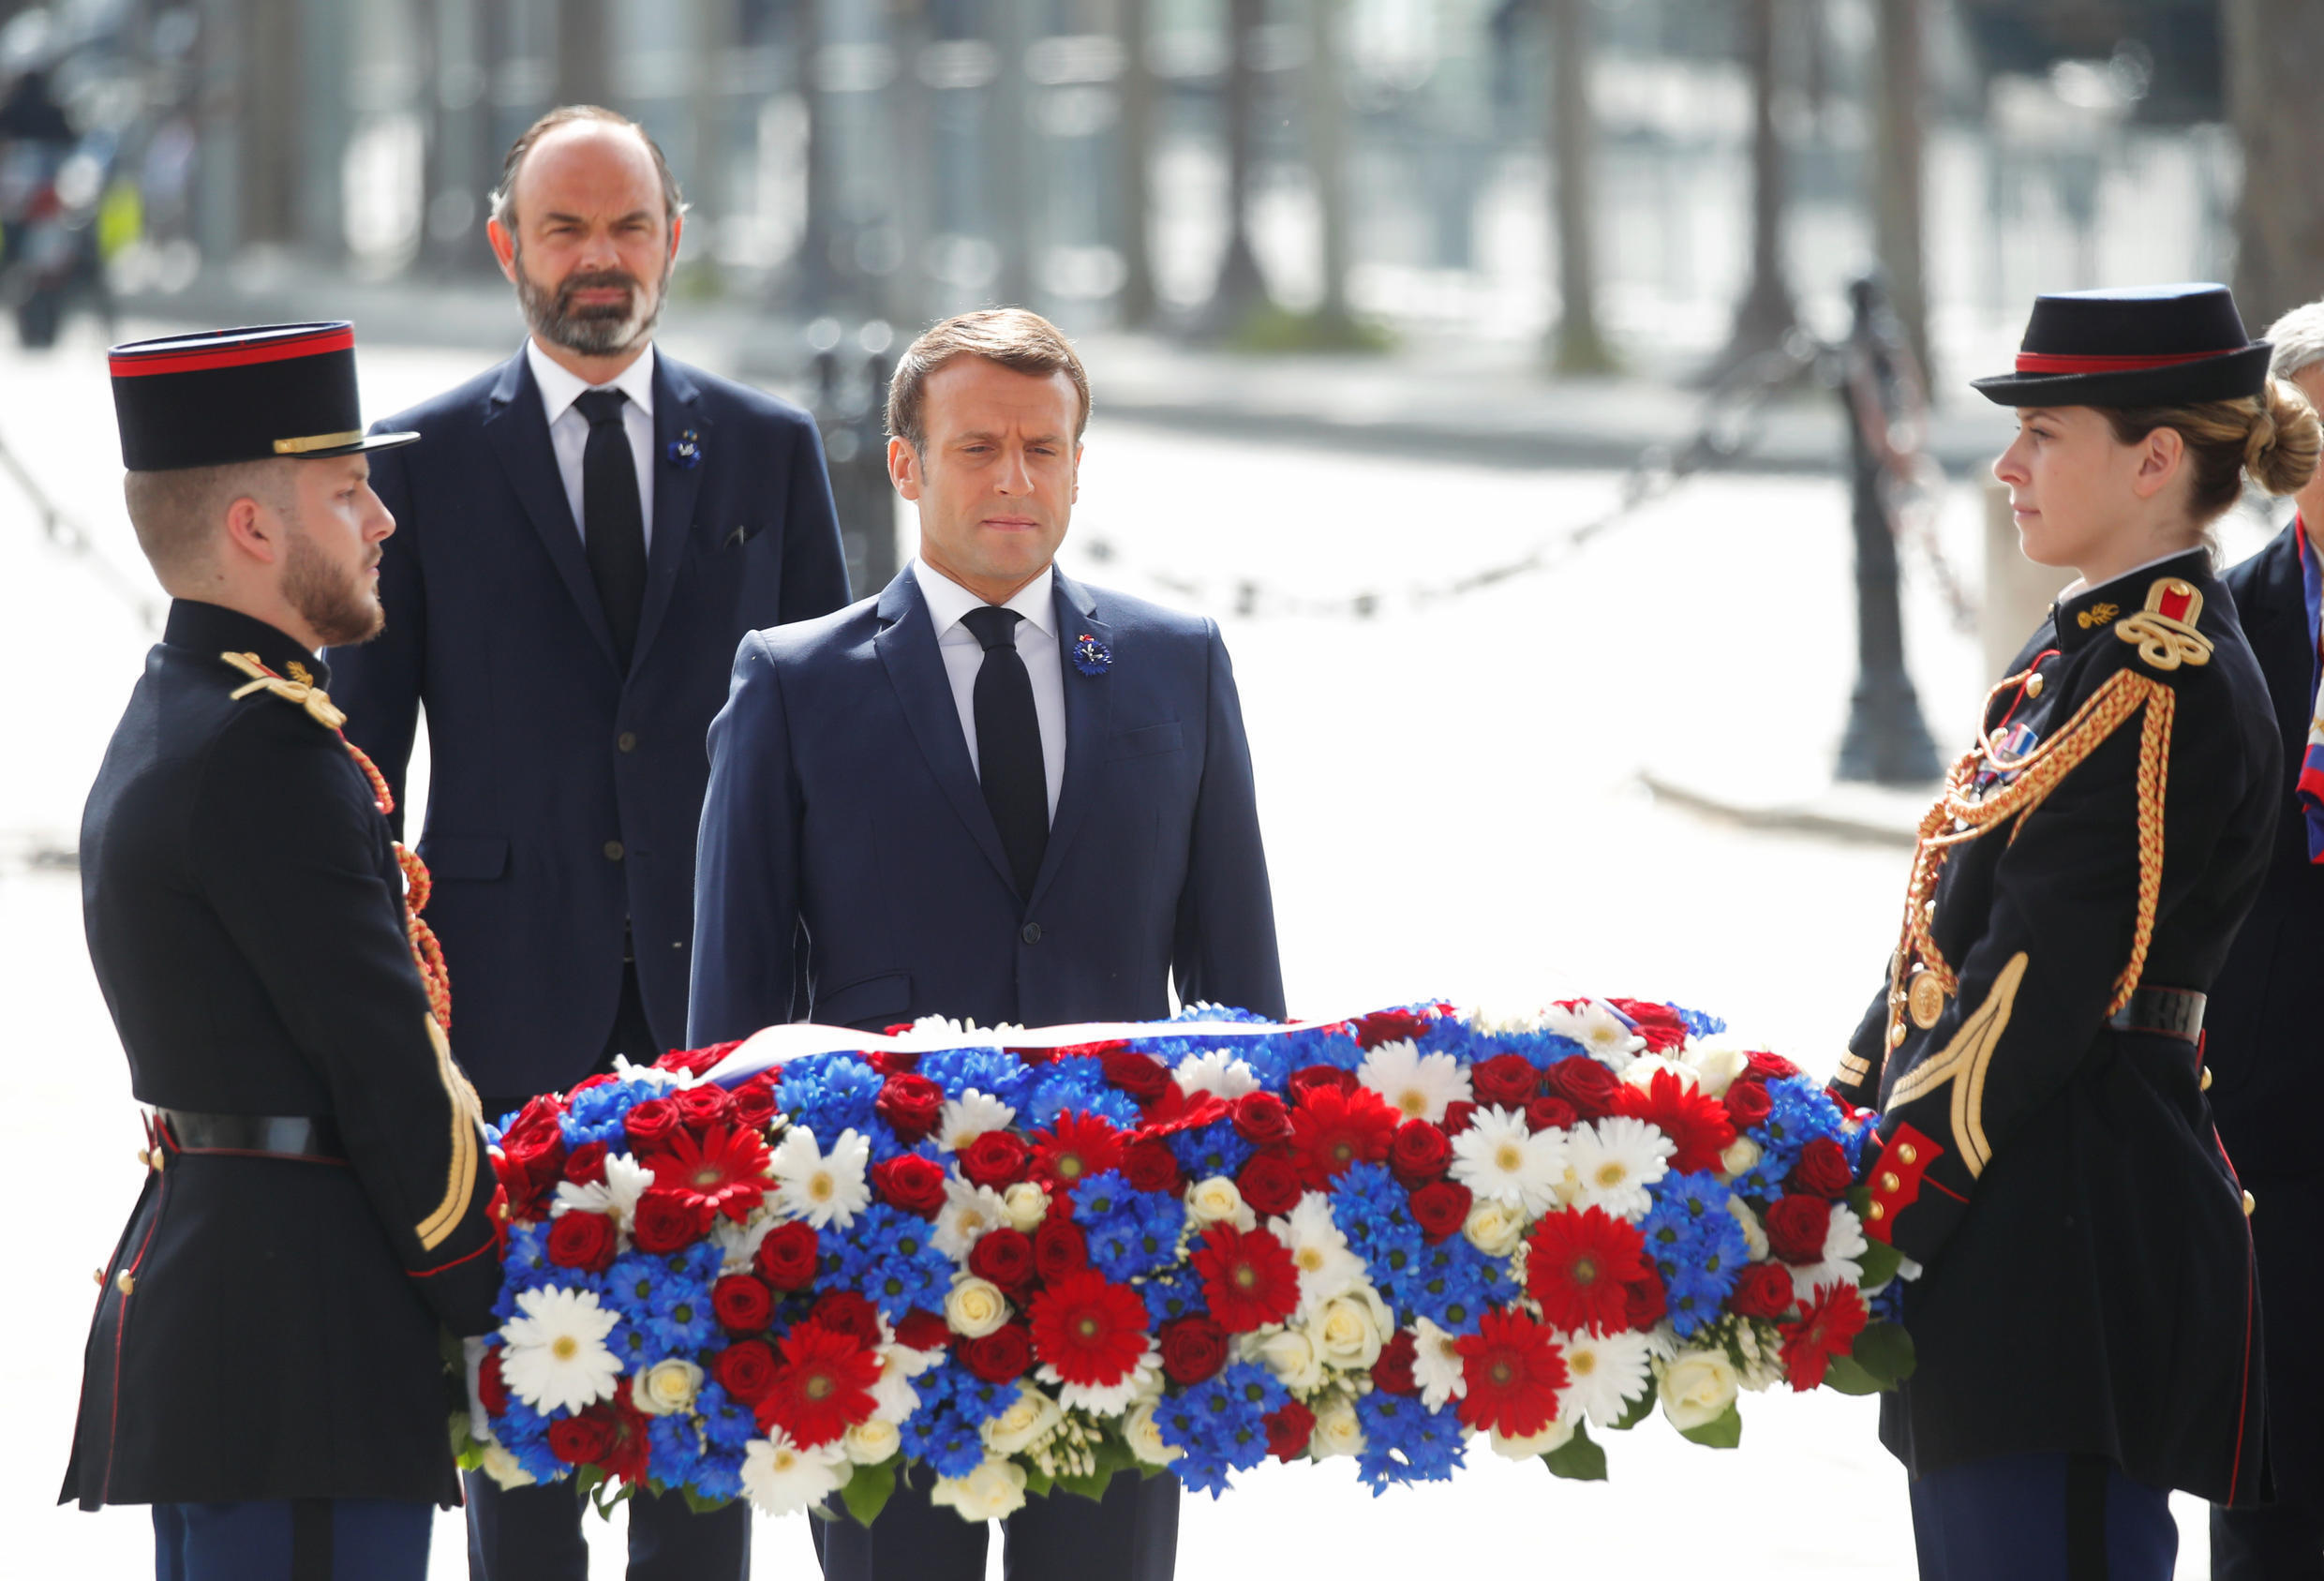 French President Emmanuel Macron and French Prime Minister Edouard Philippe attend a ceremony to mark the end of World War II at the Arc de Triomphe in Paris, France May 8, 2020.